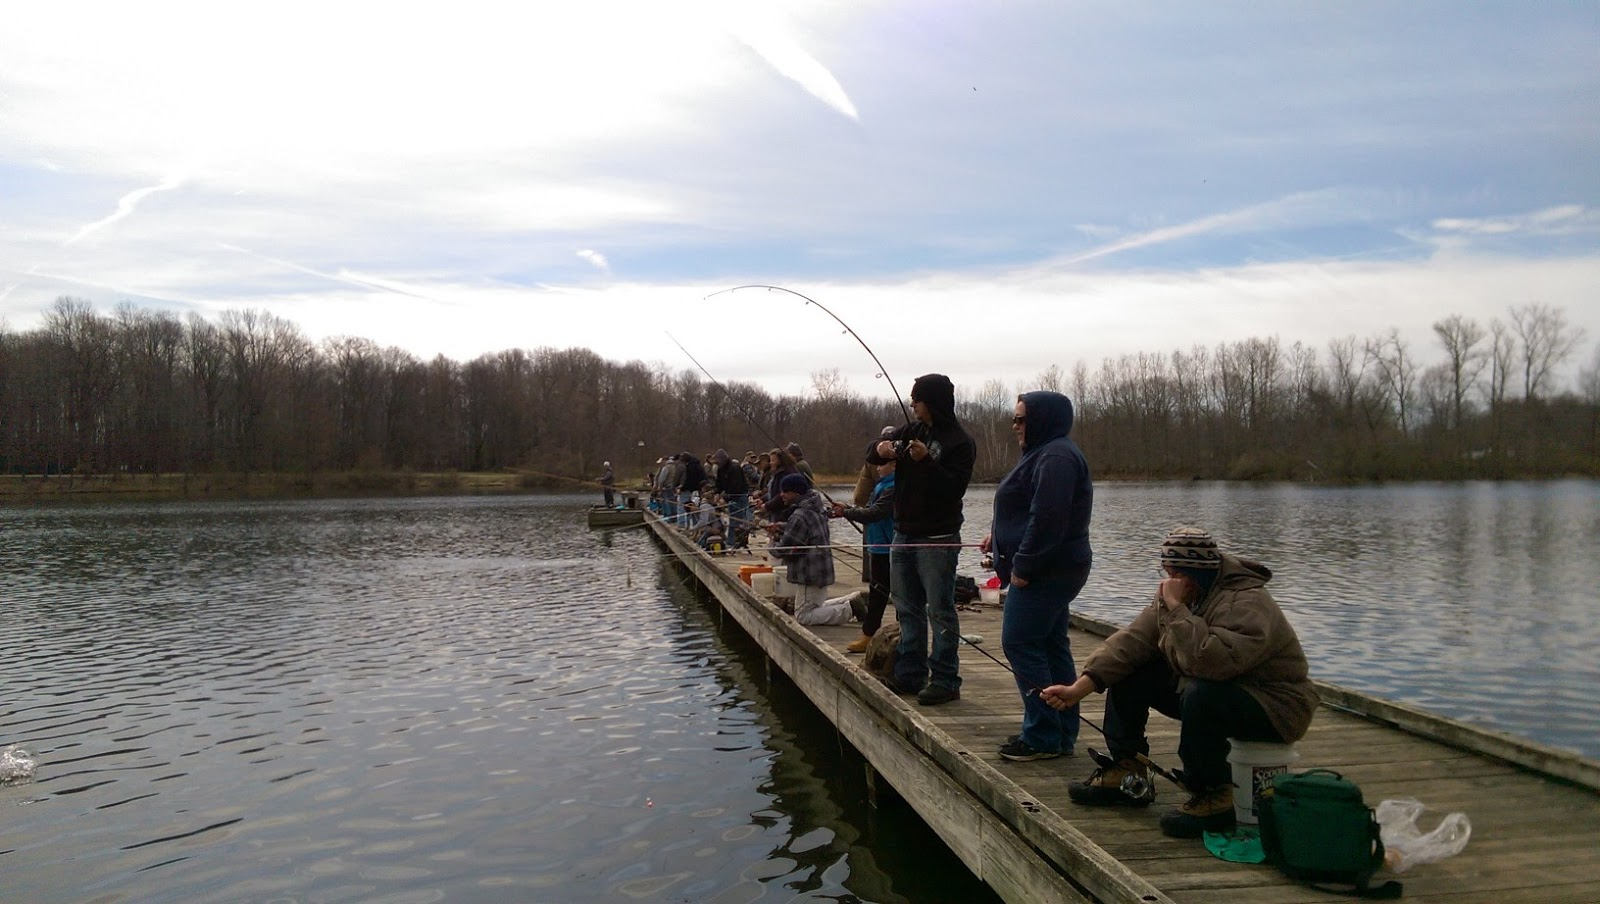 Lake metroparks fishing report the veteran 39 s park trout for Odnr fishing license